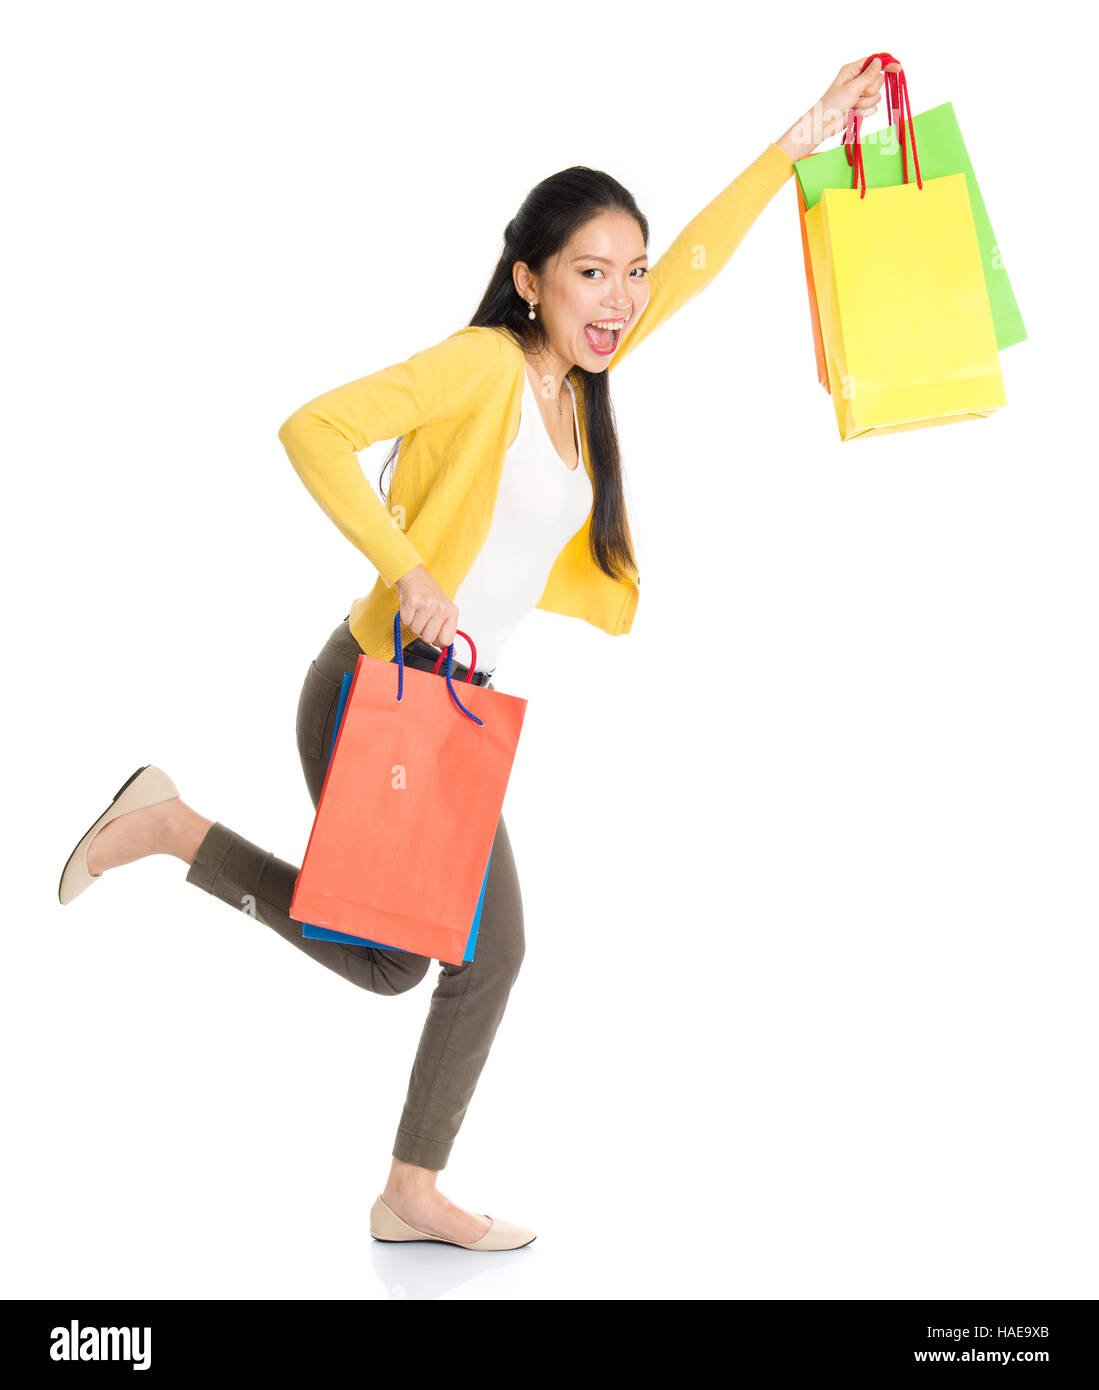 Woman posing with shopping bags isolated on white background full - Happy Young Asian Female Shopper Running Hands Outstretched Holding Shopping Bags And Smiling Full Length Isolated Standing On White Background